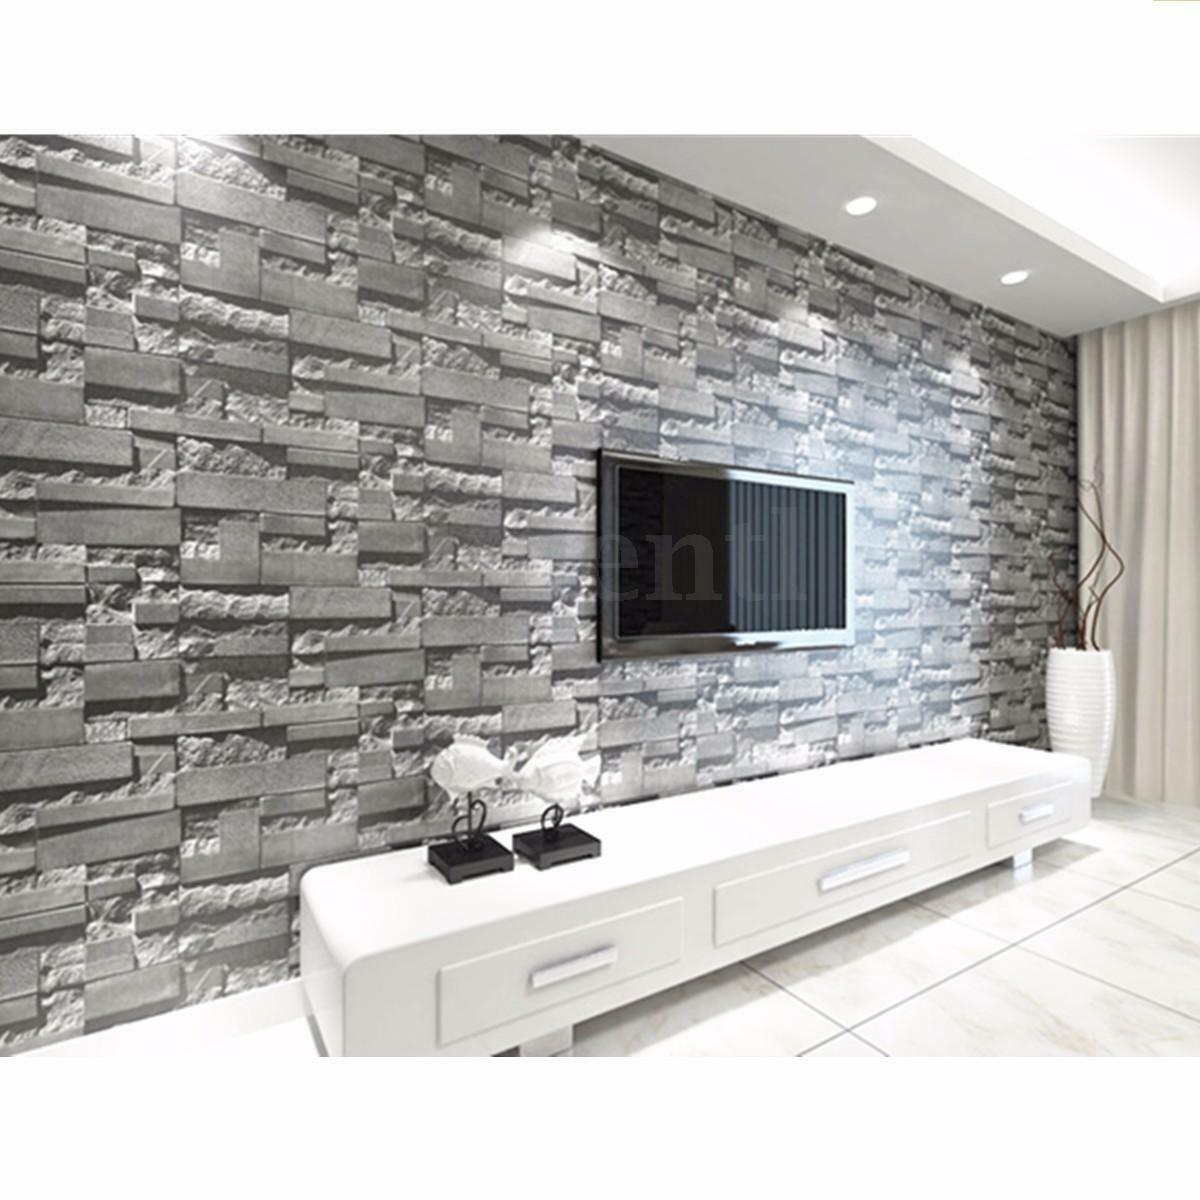 1 Of 12FREE Shipping 10M 3D Wallpaper Bedroom Mural Roll Modern Stone Brick  Wall Background Textured